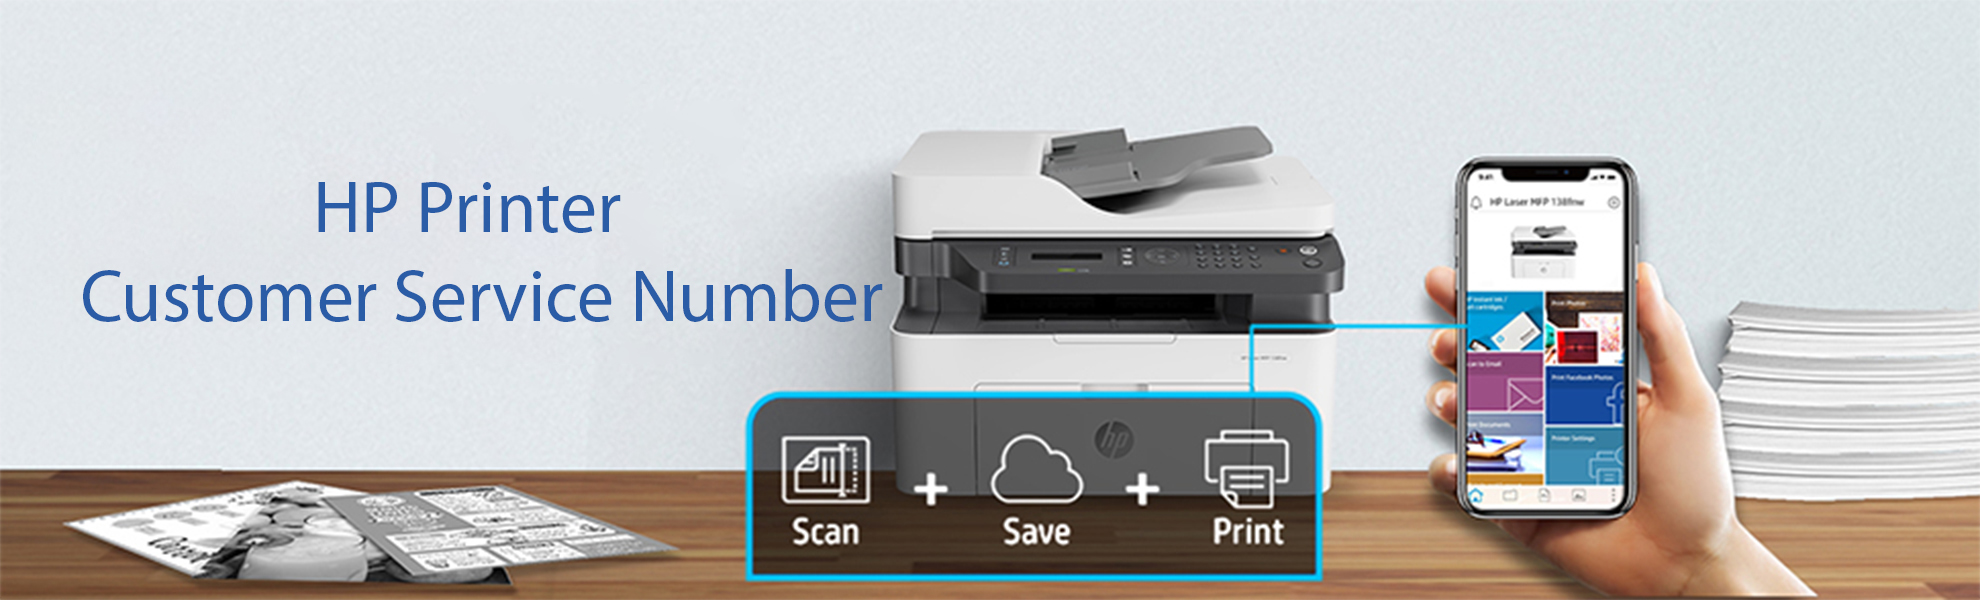 Dial HP Printer Support Contact Number USA for Installation